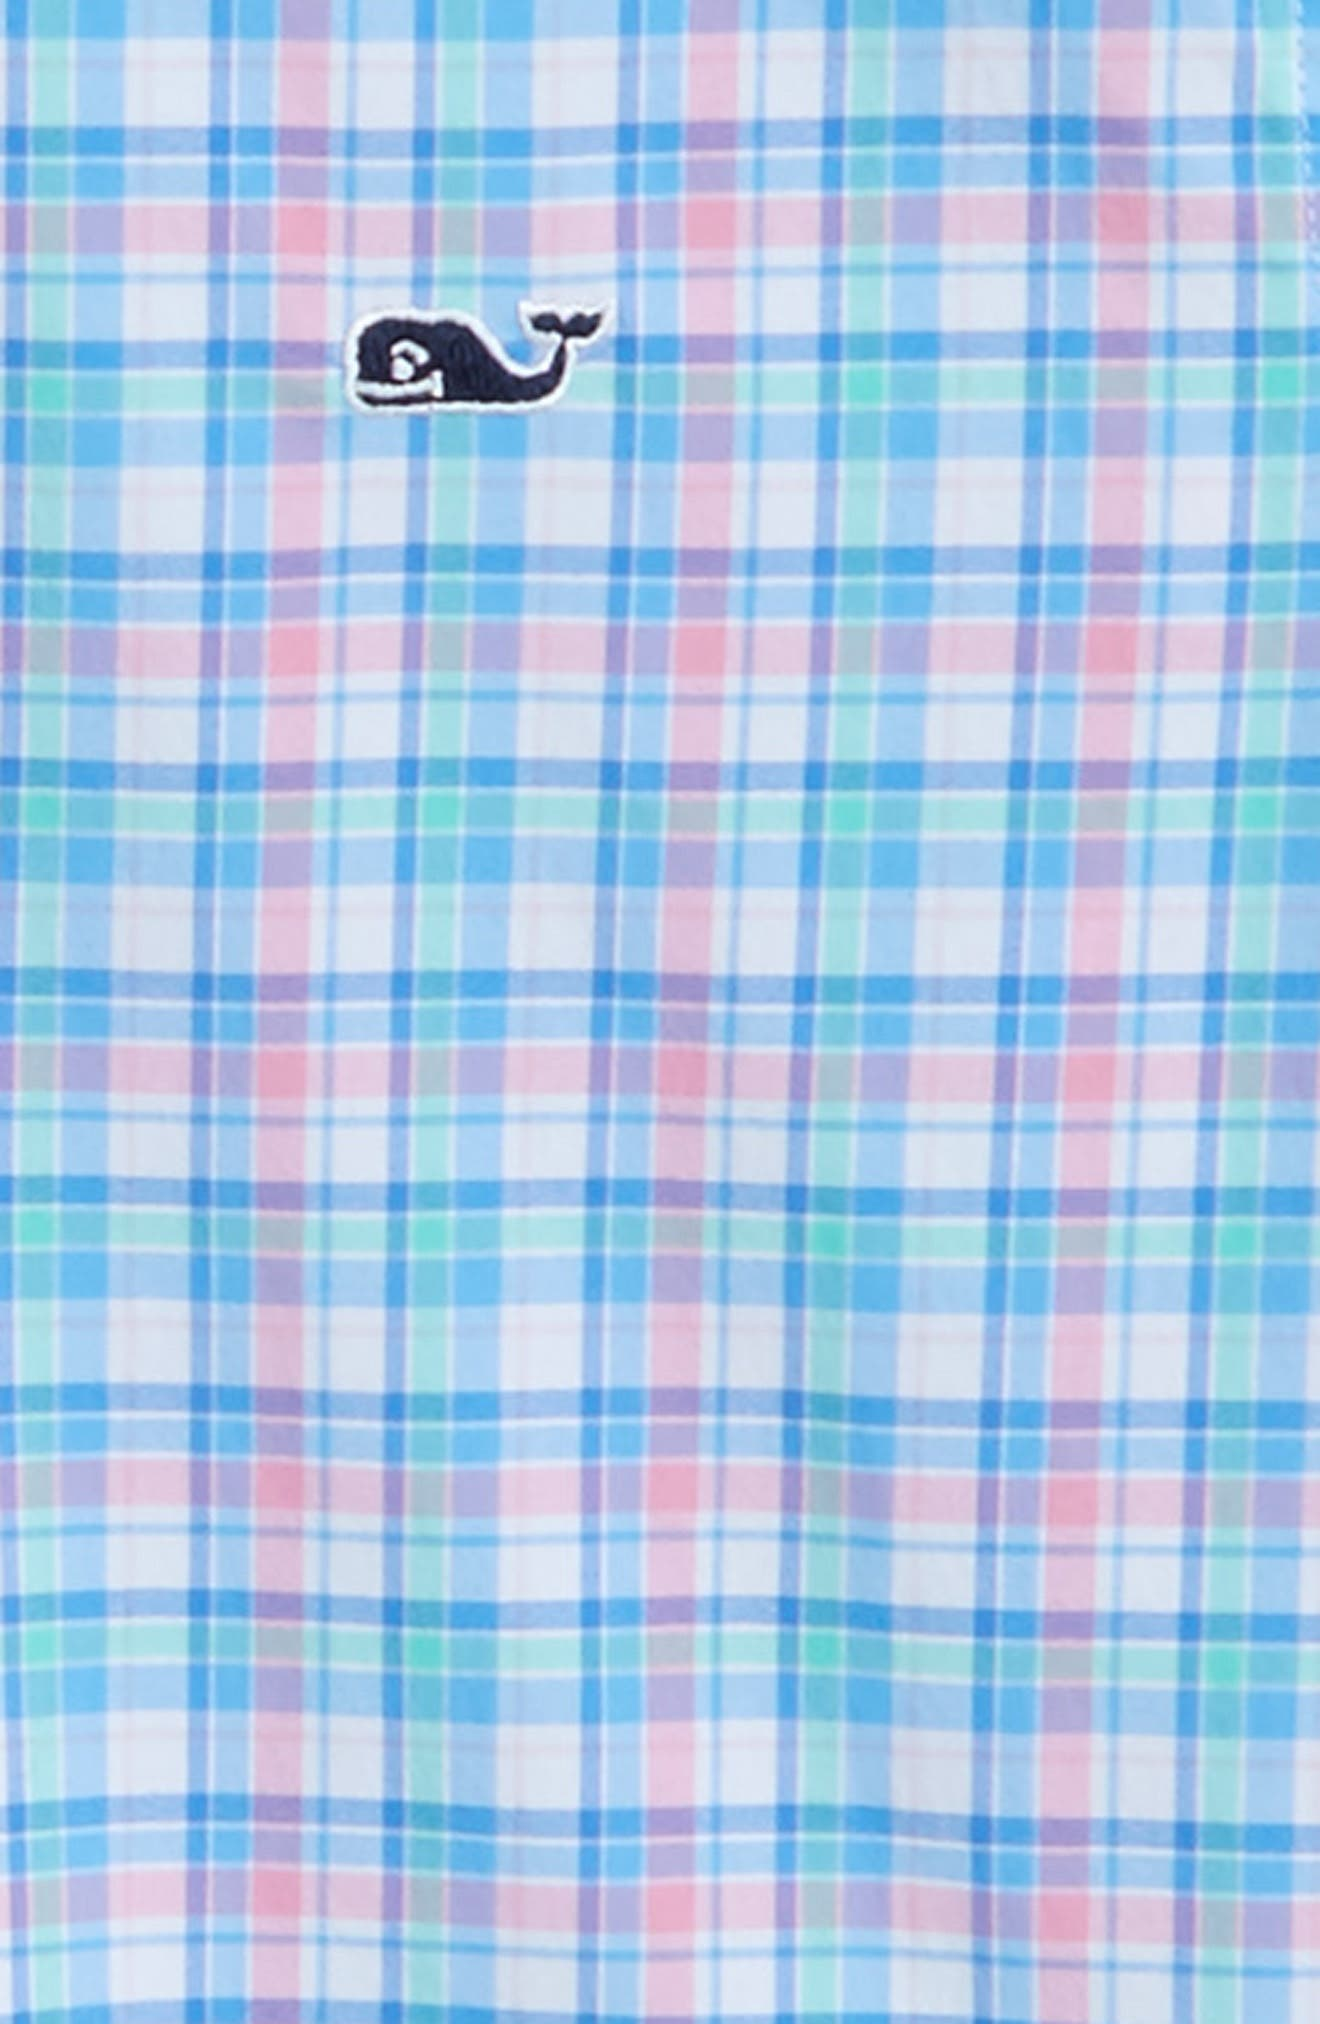 Sheltered Cove Plaid Whale Shirt,                             Alternate thumbnail 2, color,                             Pink